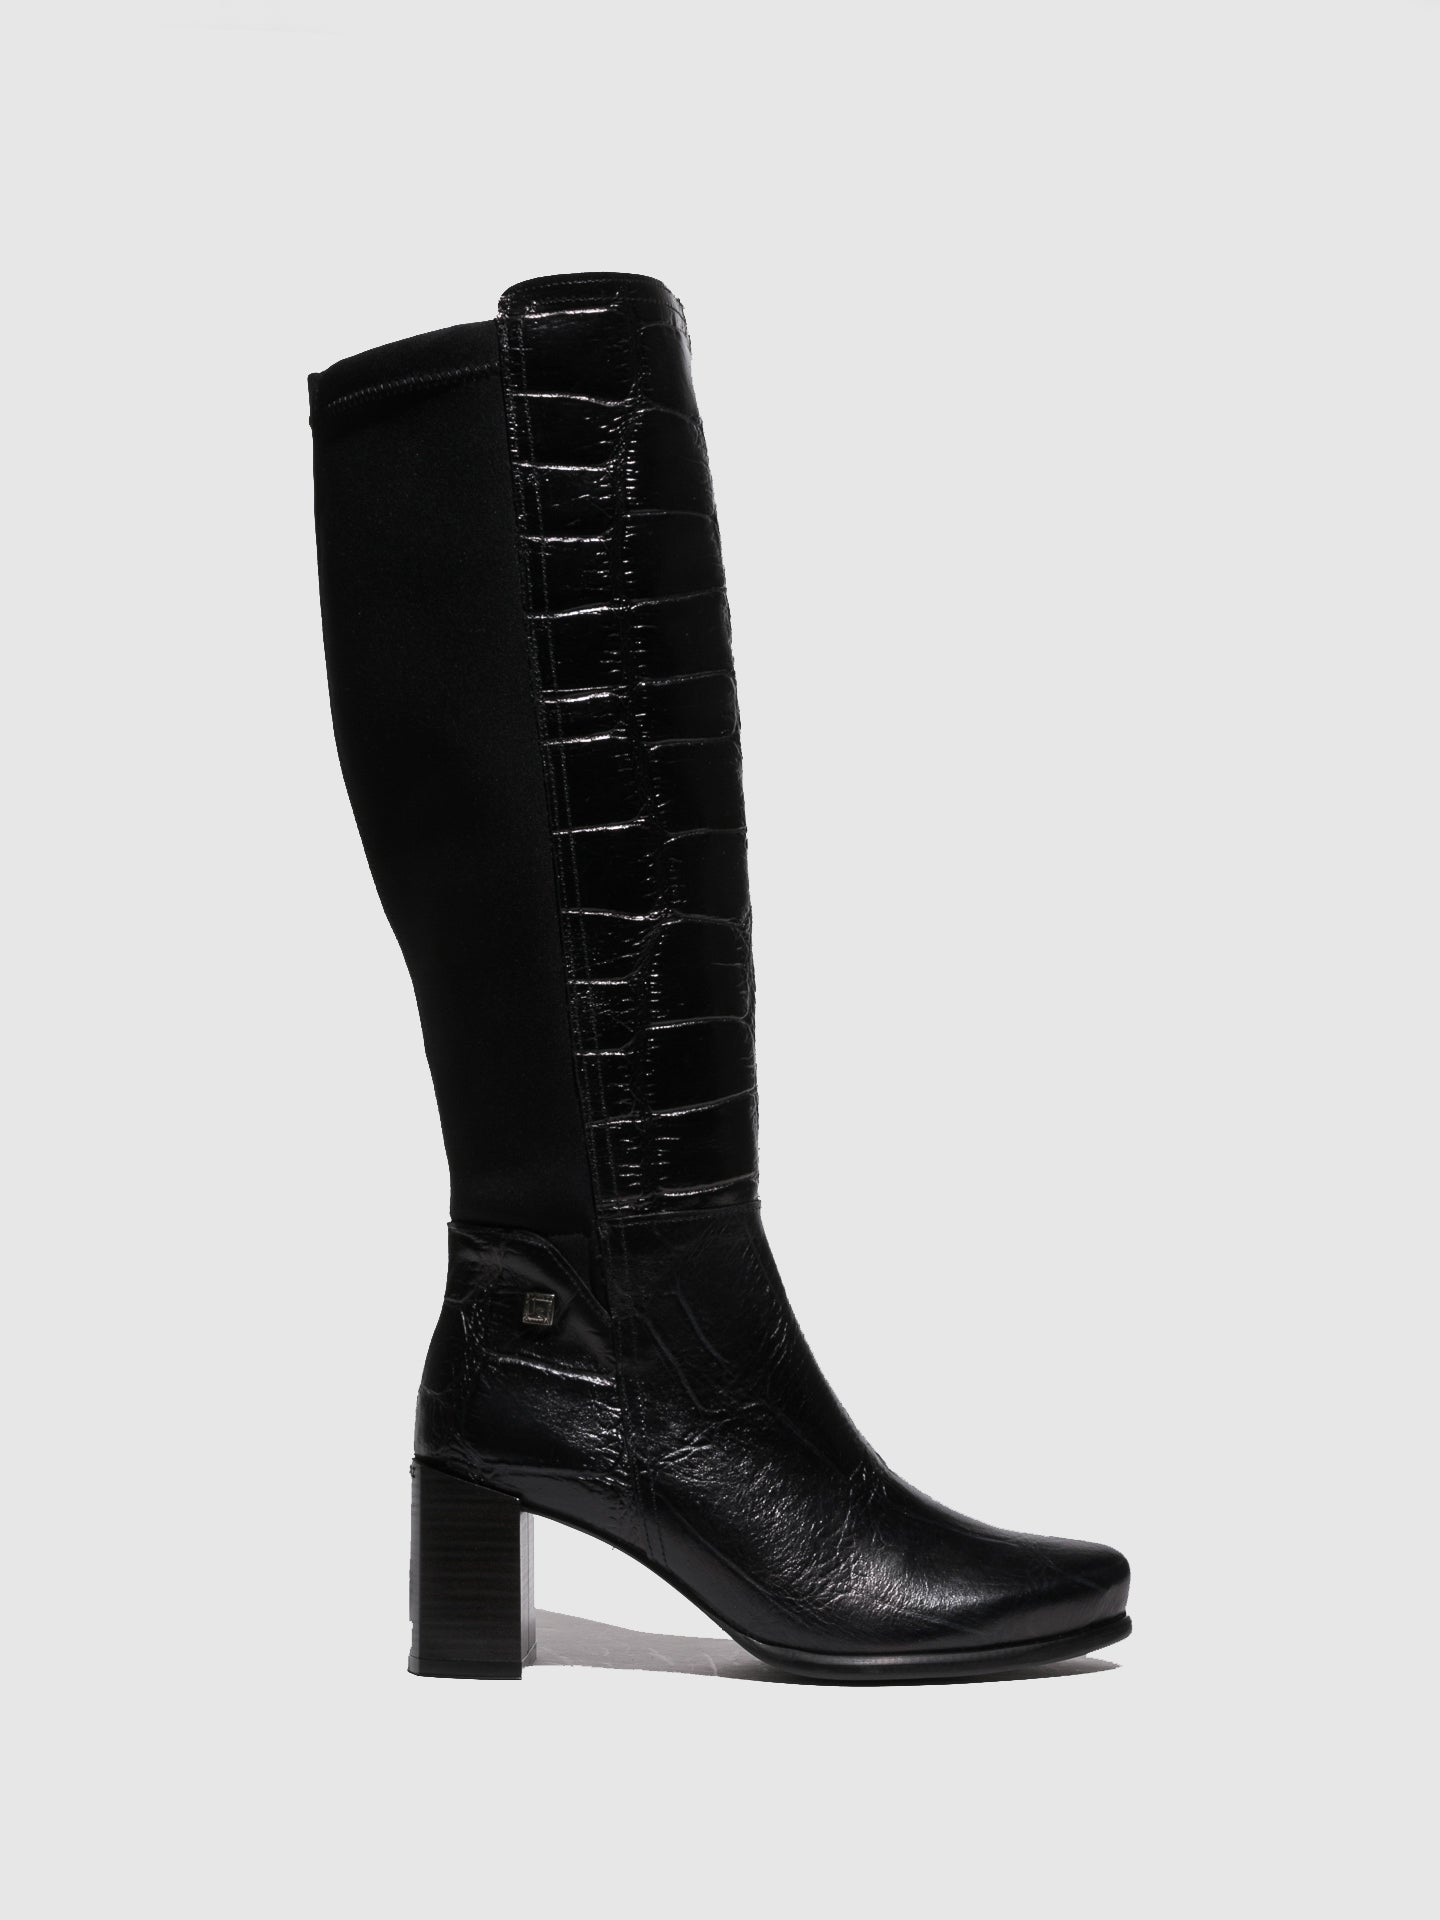 Jose Saenz Black Zip Up Boots